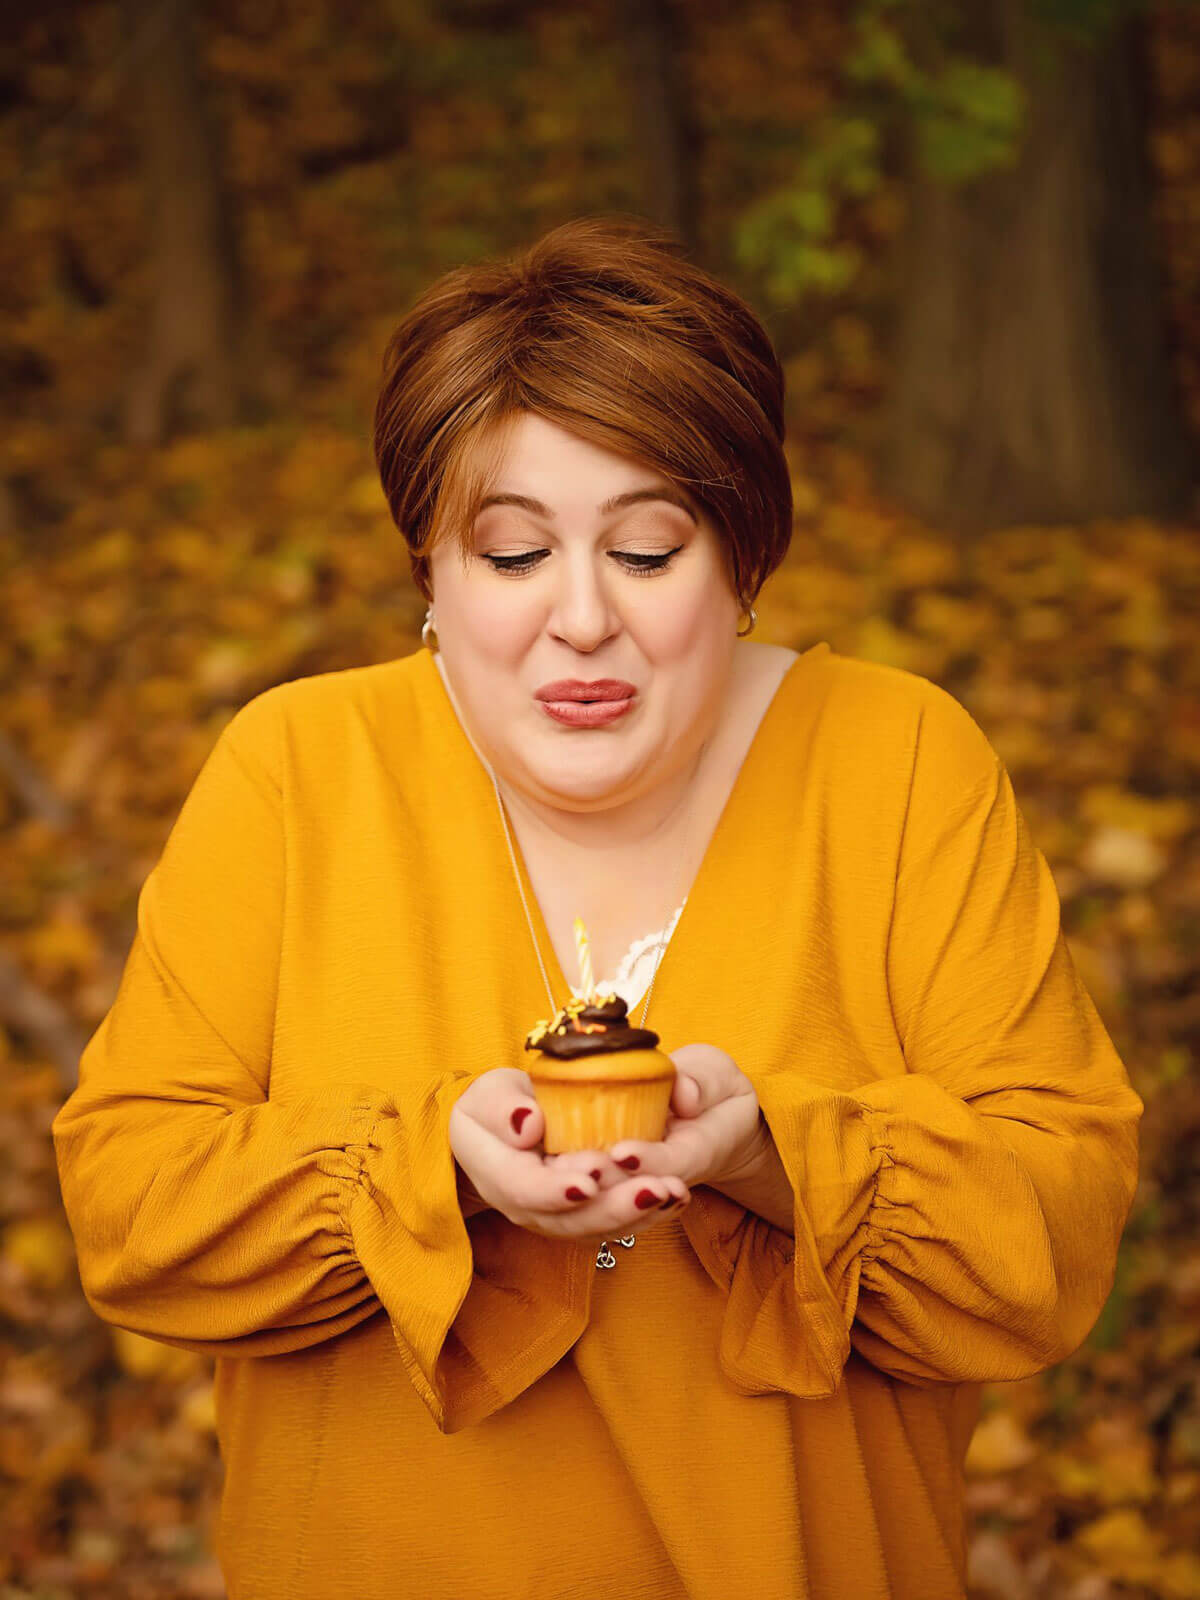 Holly wearing a marigold color sweater and blowing out a single candle on a cupcake.